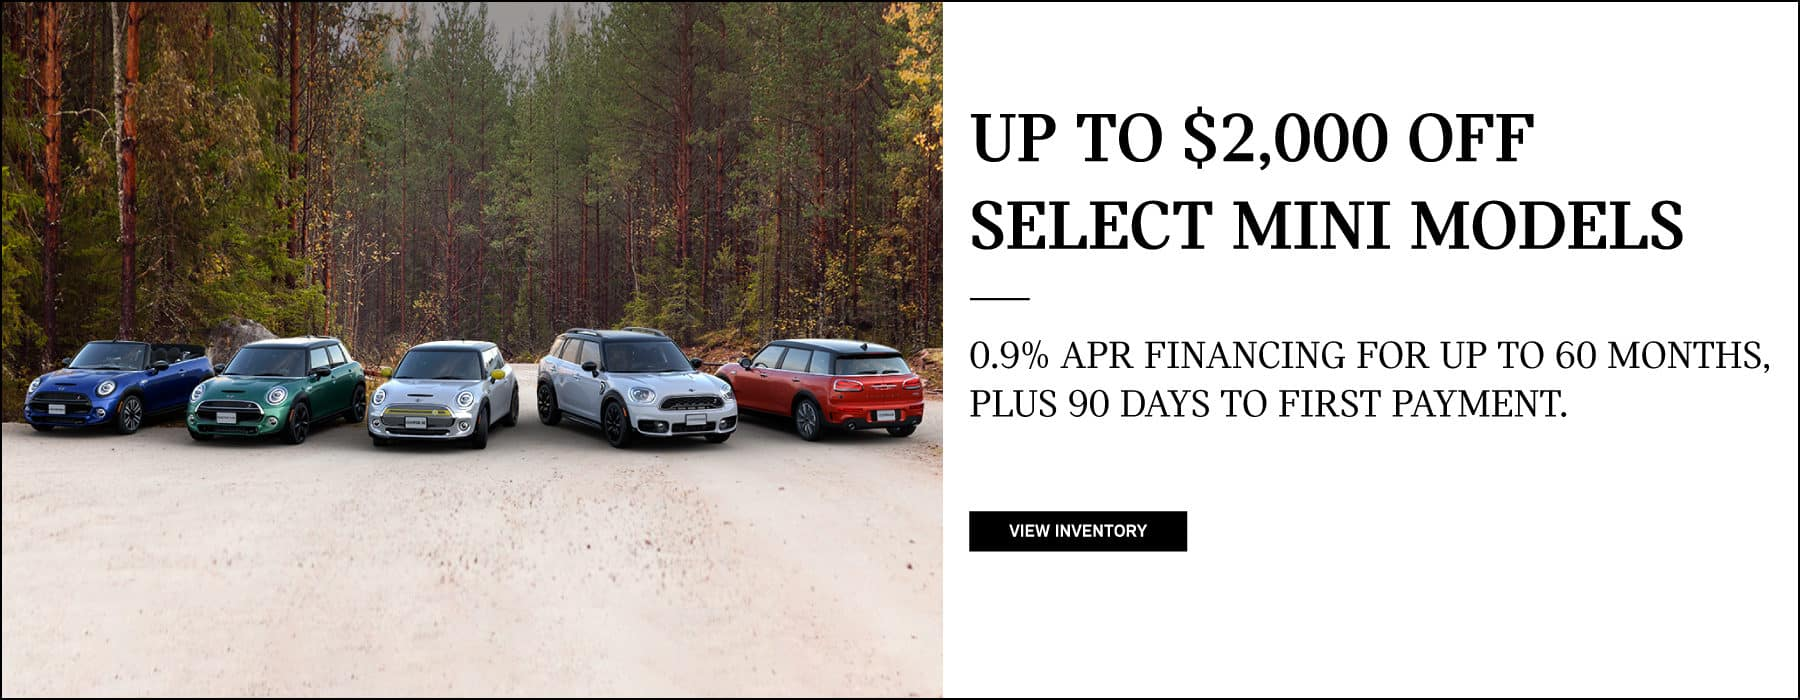 Up to $2,000 off select mini models. 0.9% APR up to 60 months plus 90 days to first payment.